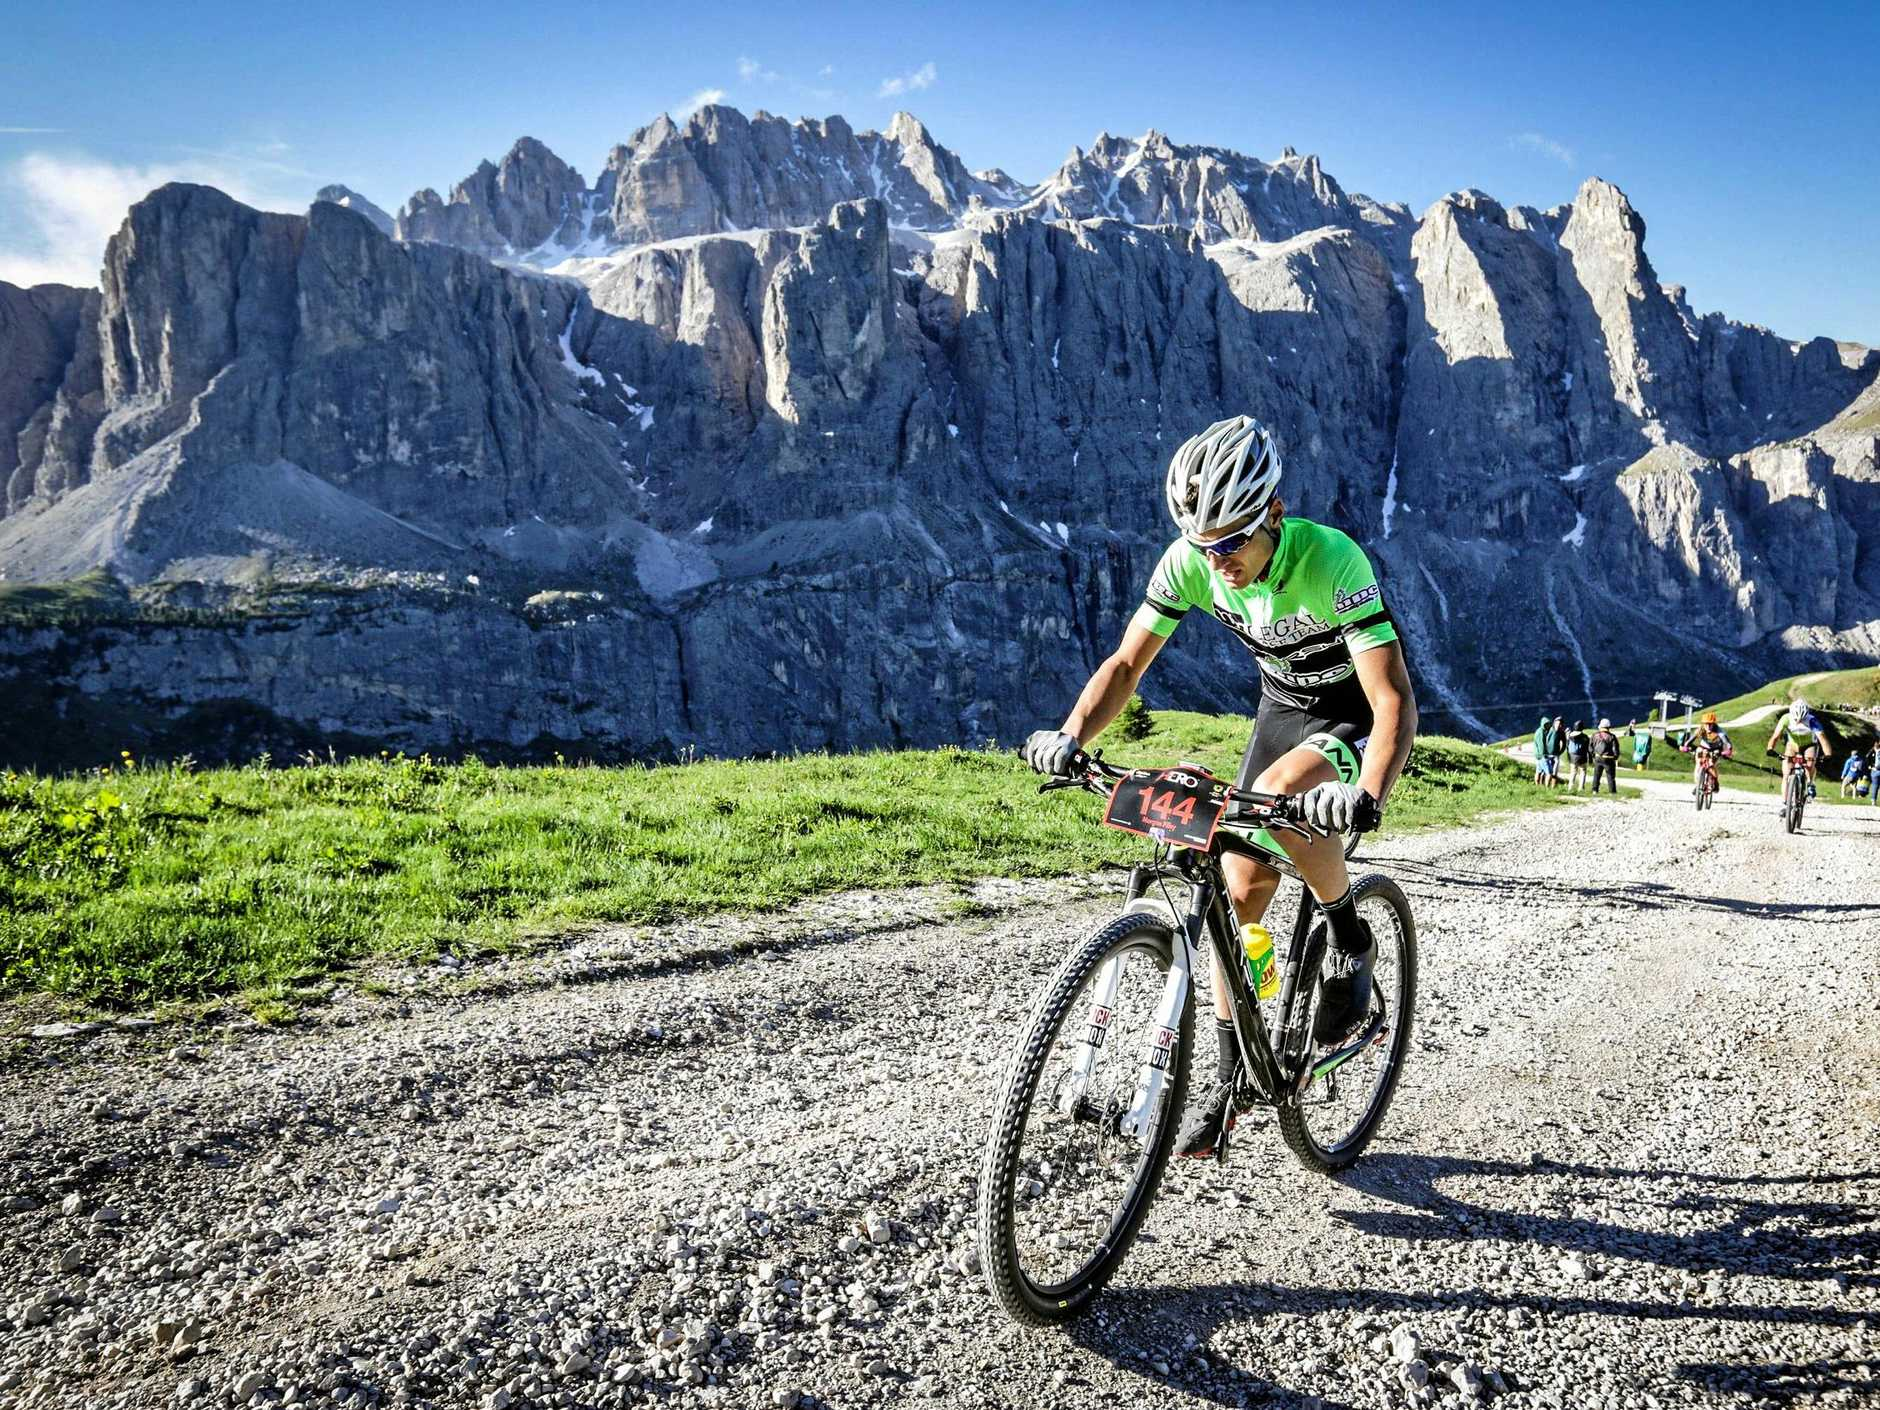 Morgan Pilley tackling one of the most gruelling mountain bike races in the world, the Sellaronda Hero through The Dolomites in Italy.